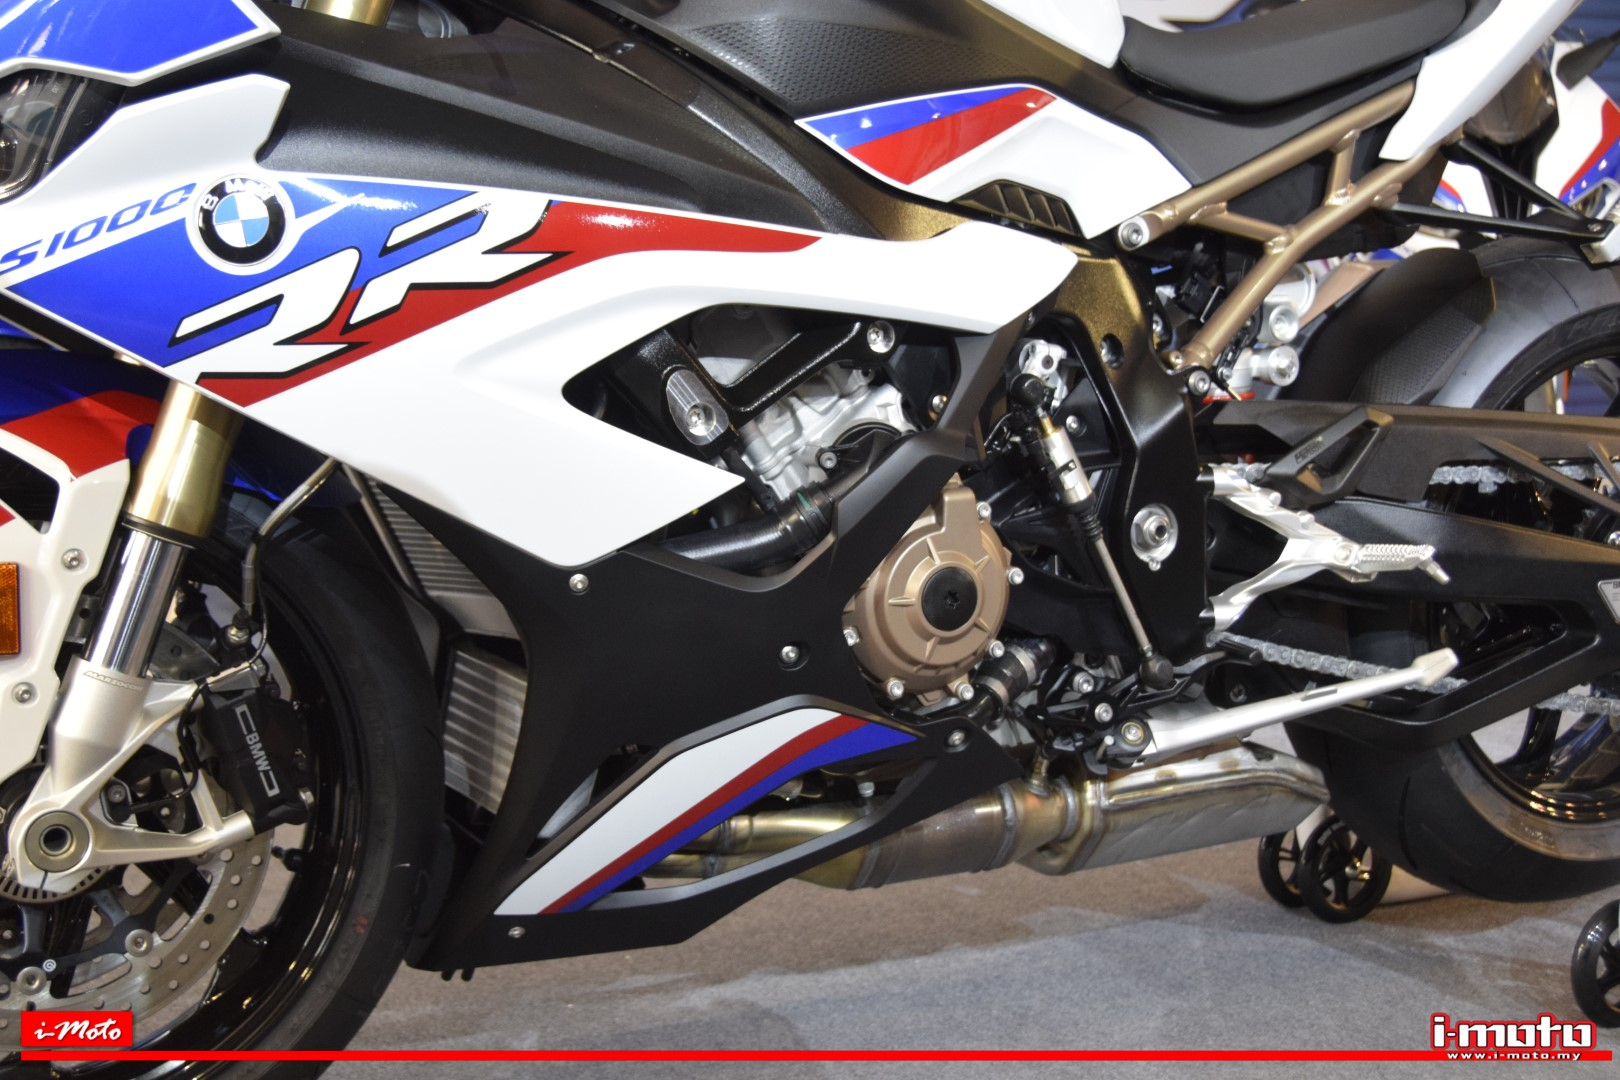 2020 BMW S1000RR ARRIVES IN MALAYSIA, SPORTIEST S1K YET! FROM RM138,500.